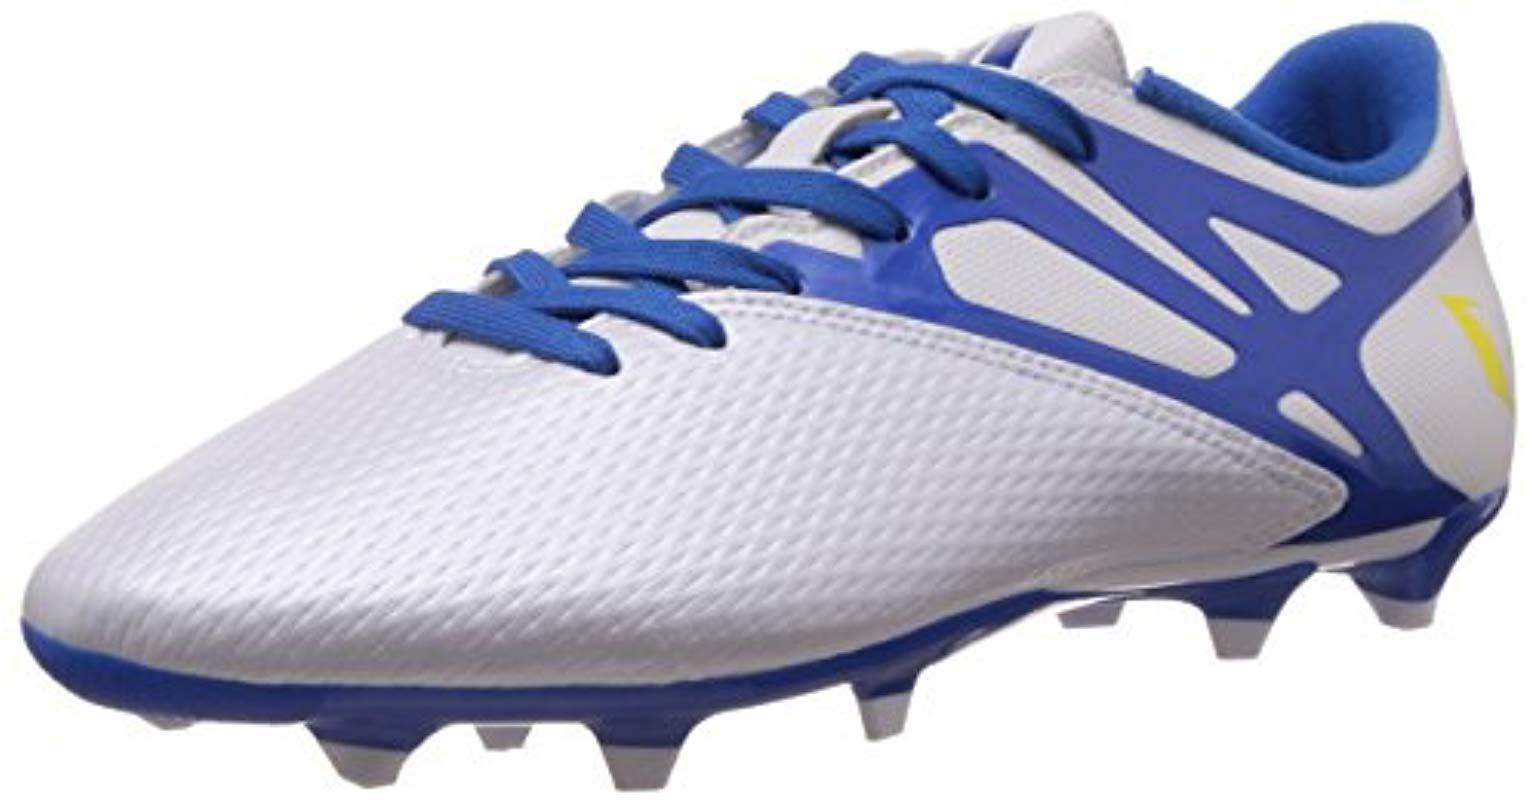 d527a96c0c6 italy adidas messi 15.1 fg ag white prime blue yellow medial angle 100bc  c87d4  shopping adidas. mens messi 15.3 27837 c7ec7